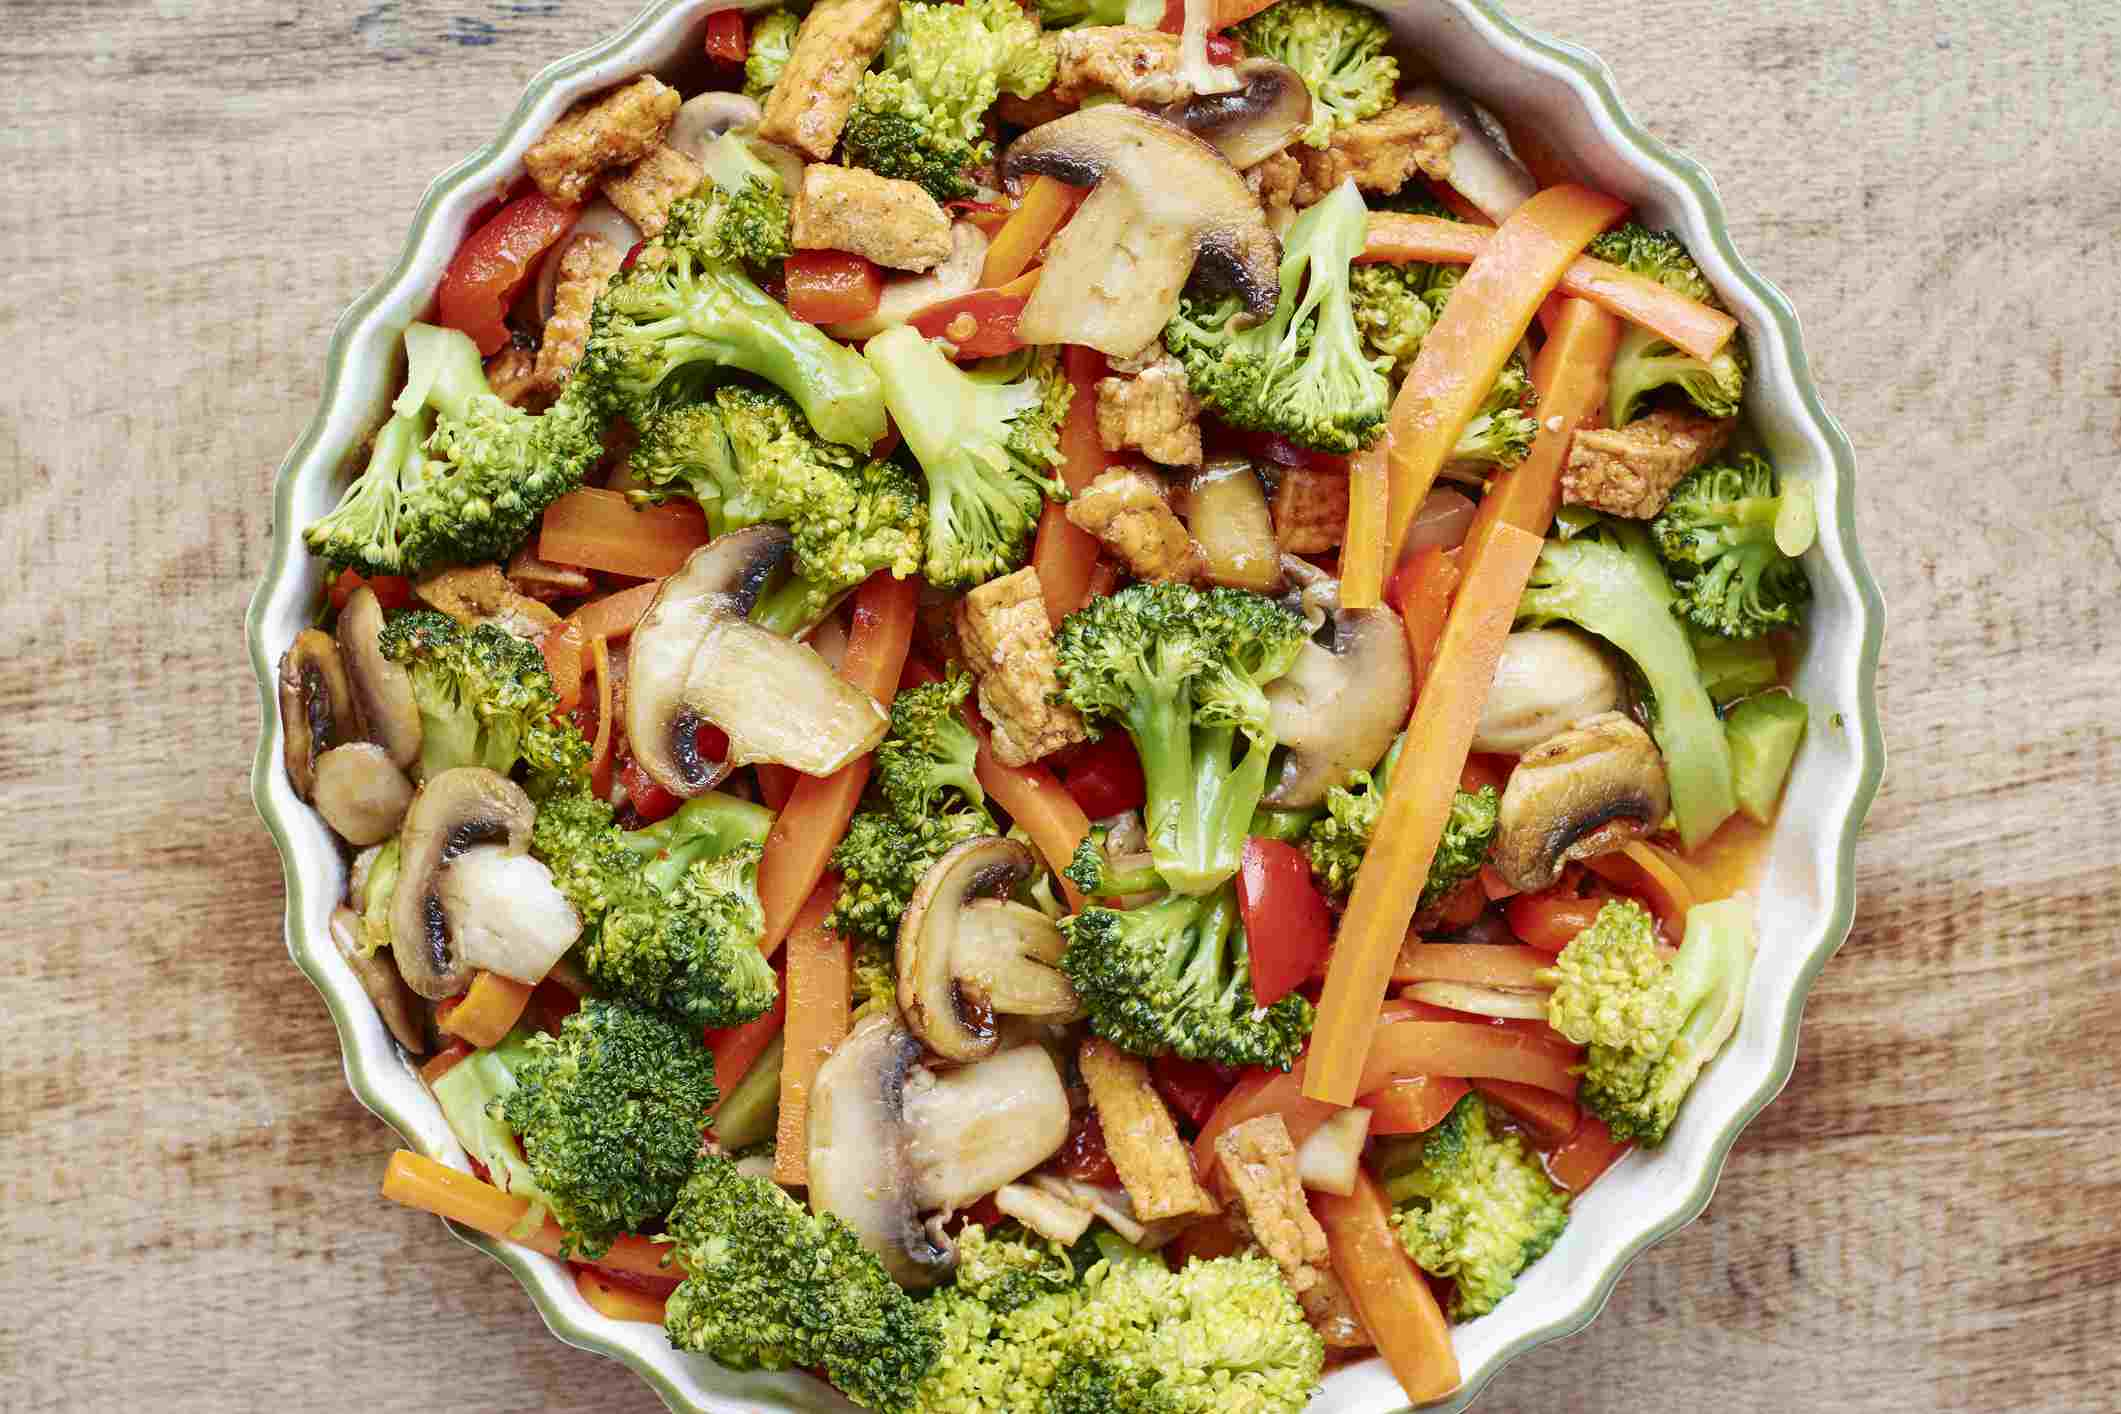 Broccoli, carrot, mushroom stir-fry with tofu in a serving bowl